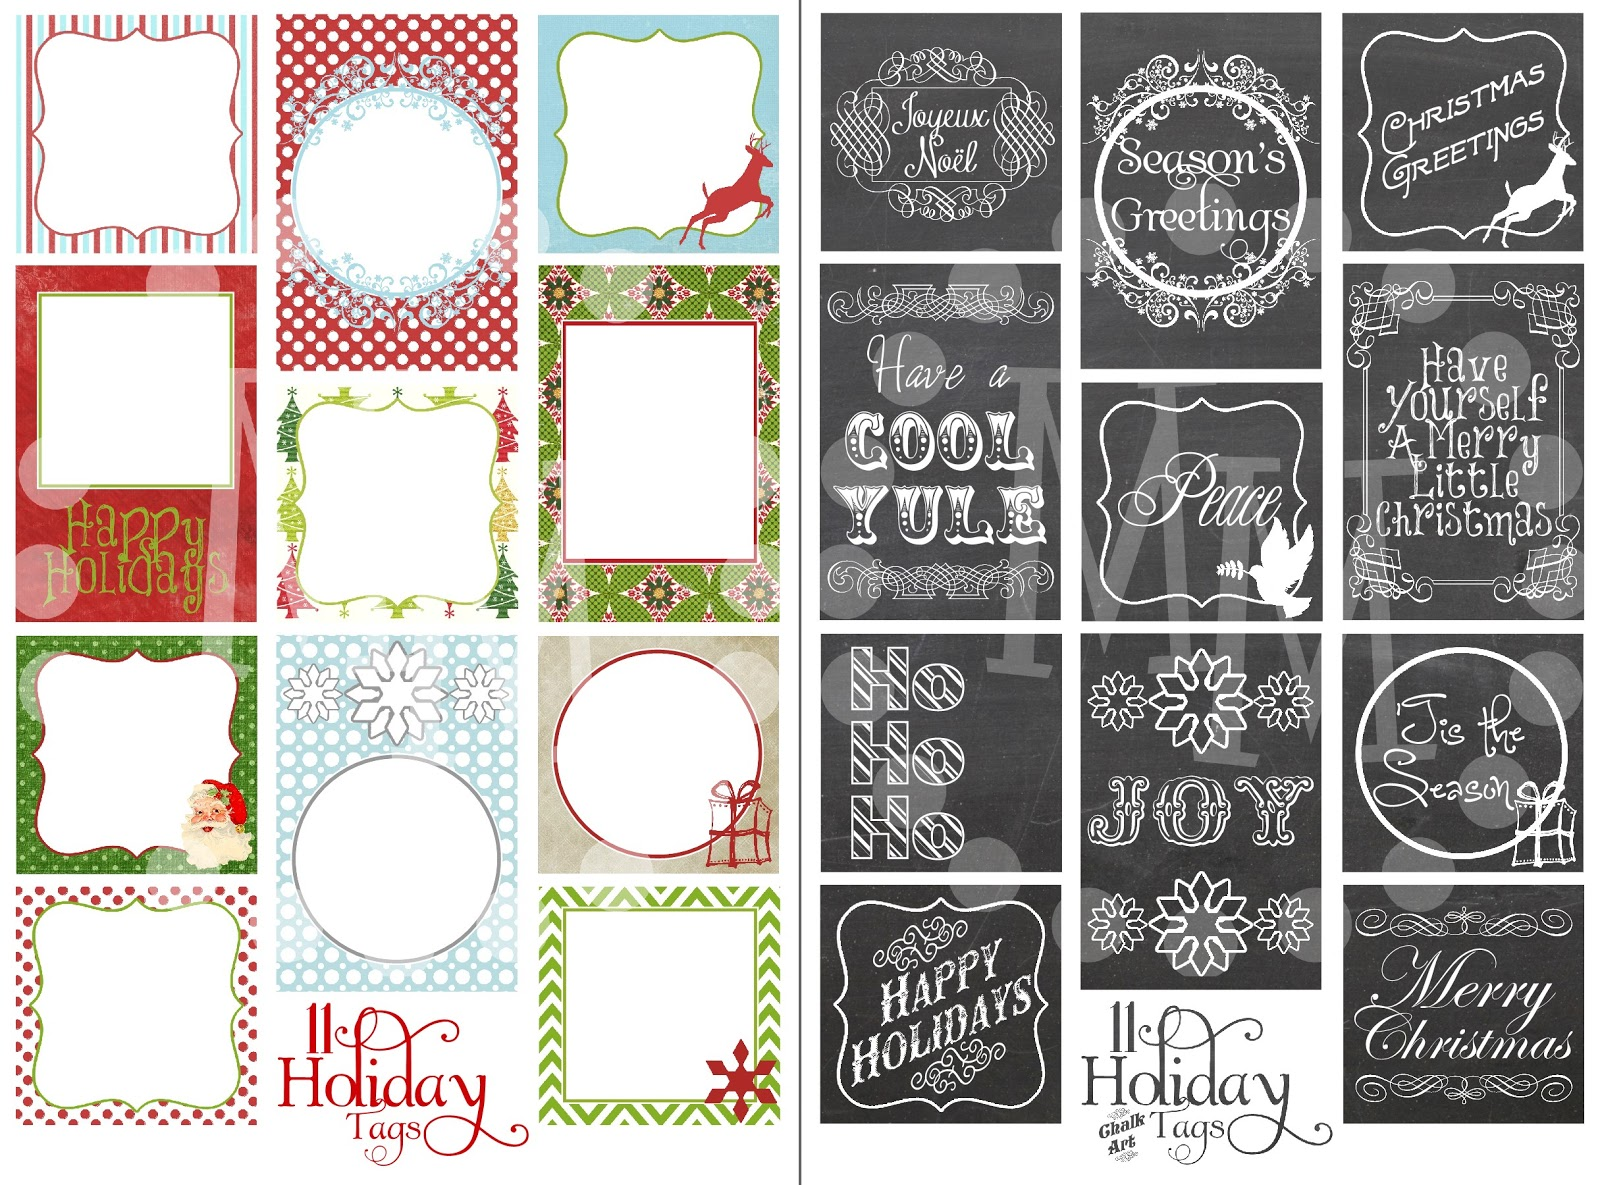 Christmas Tags: Printable Christmas Tags (2 Sets)